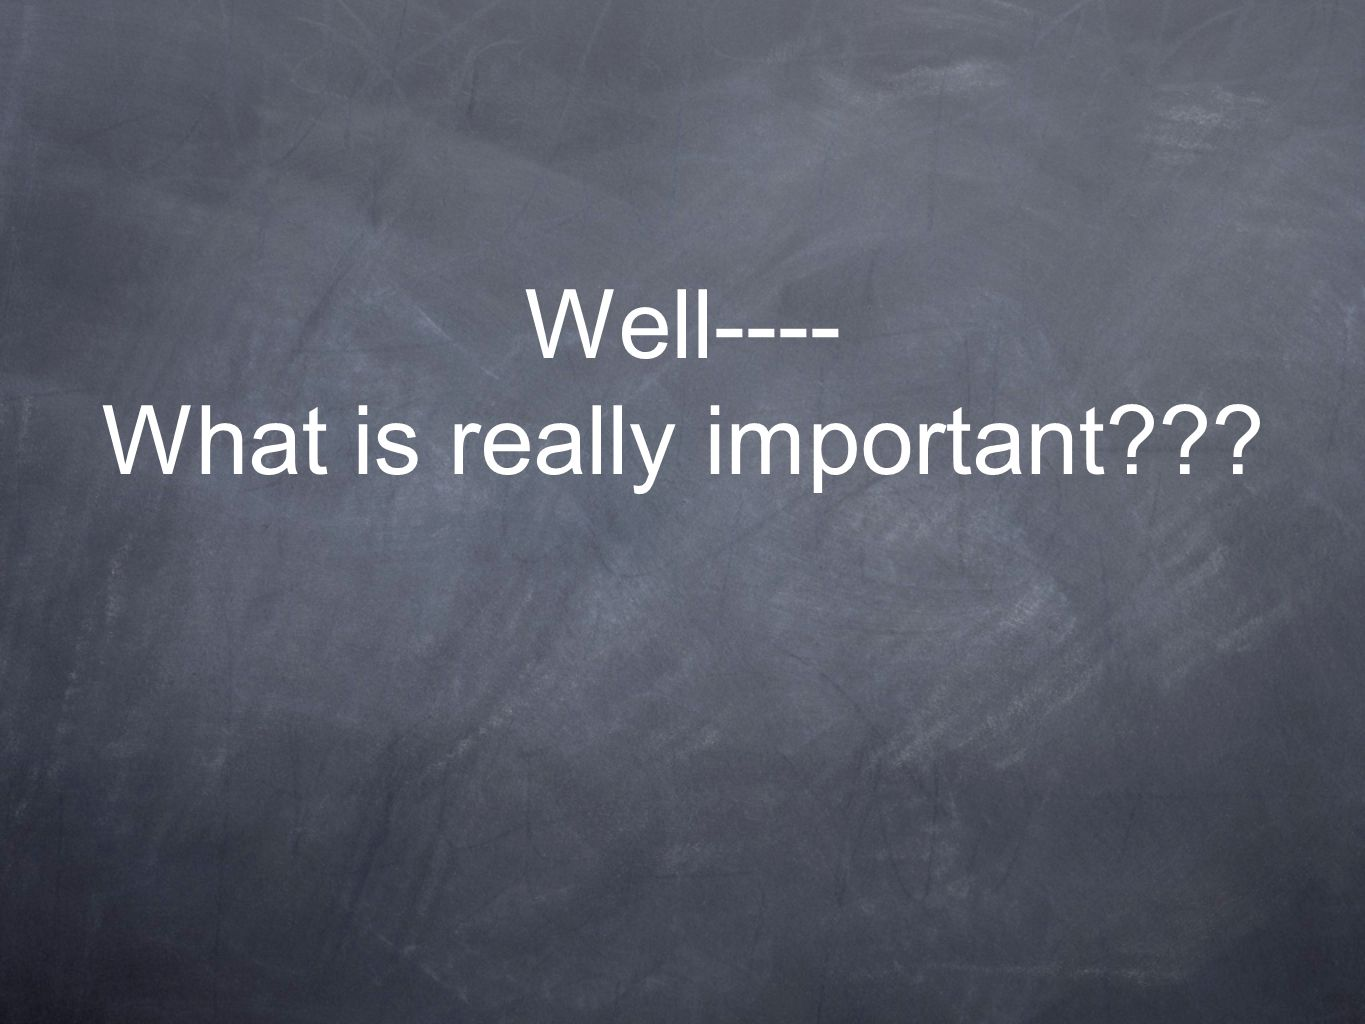 Well---- What is really important???